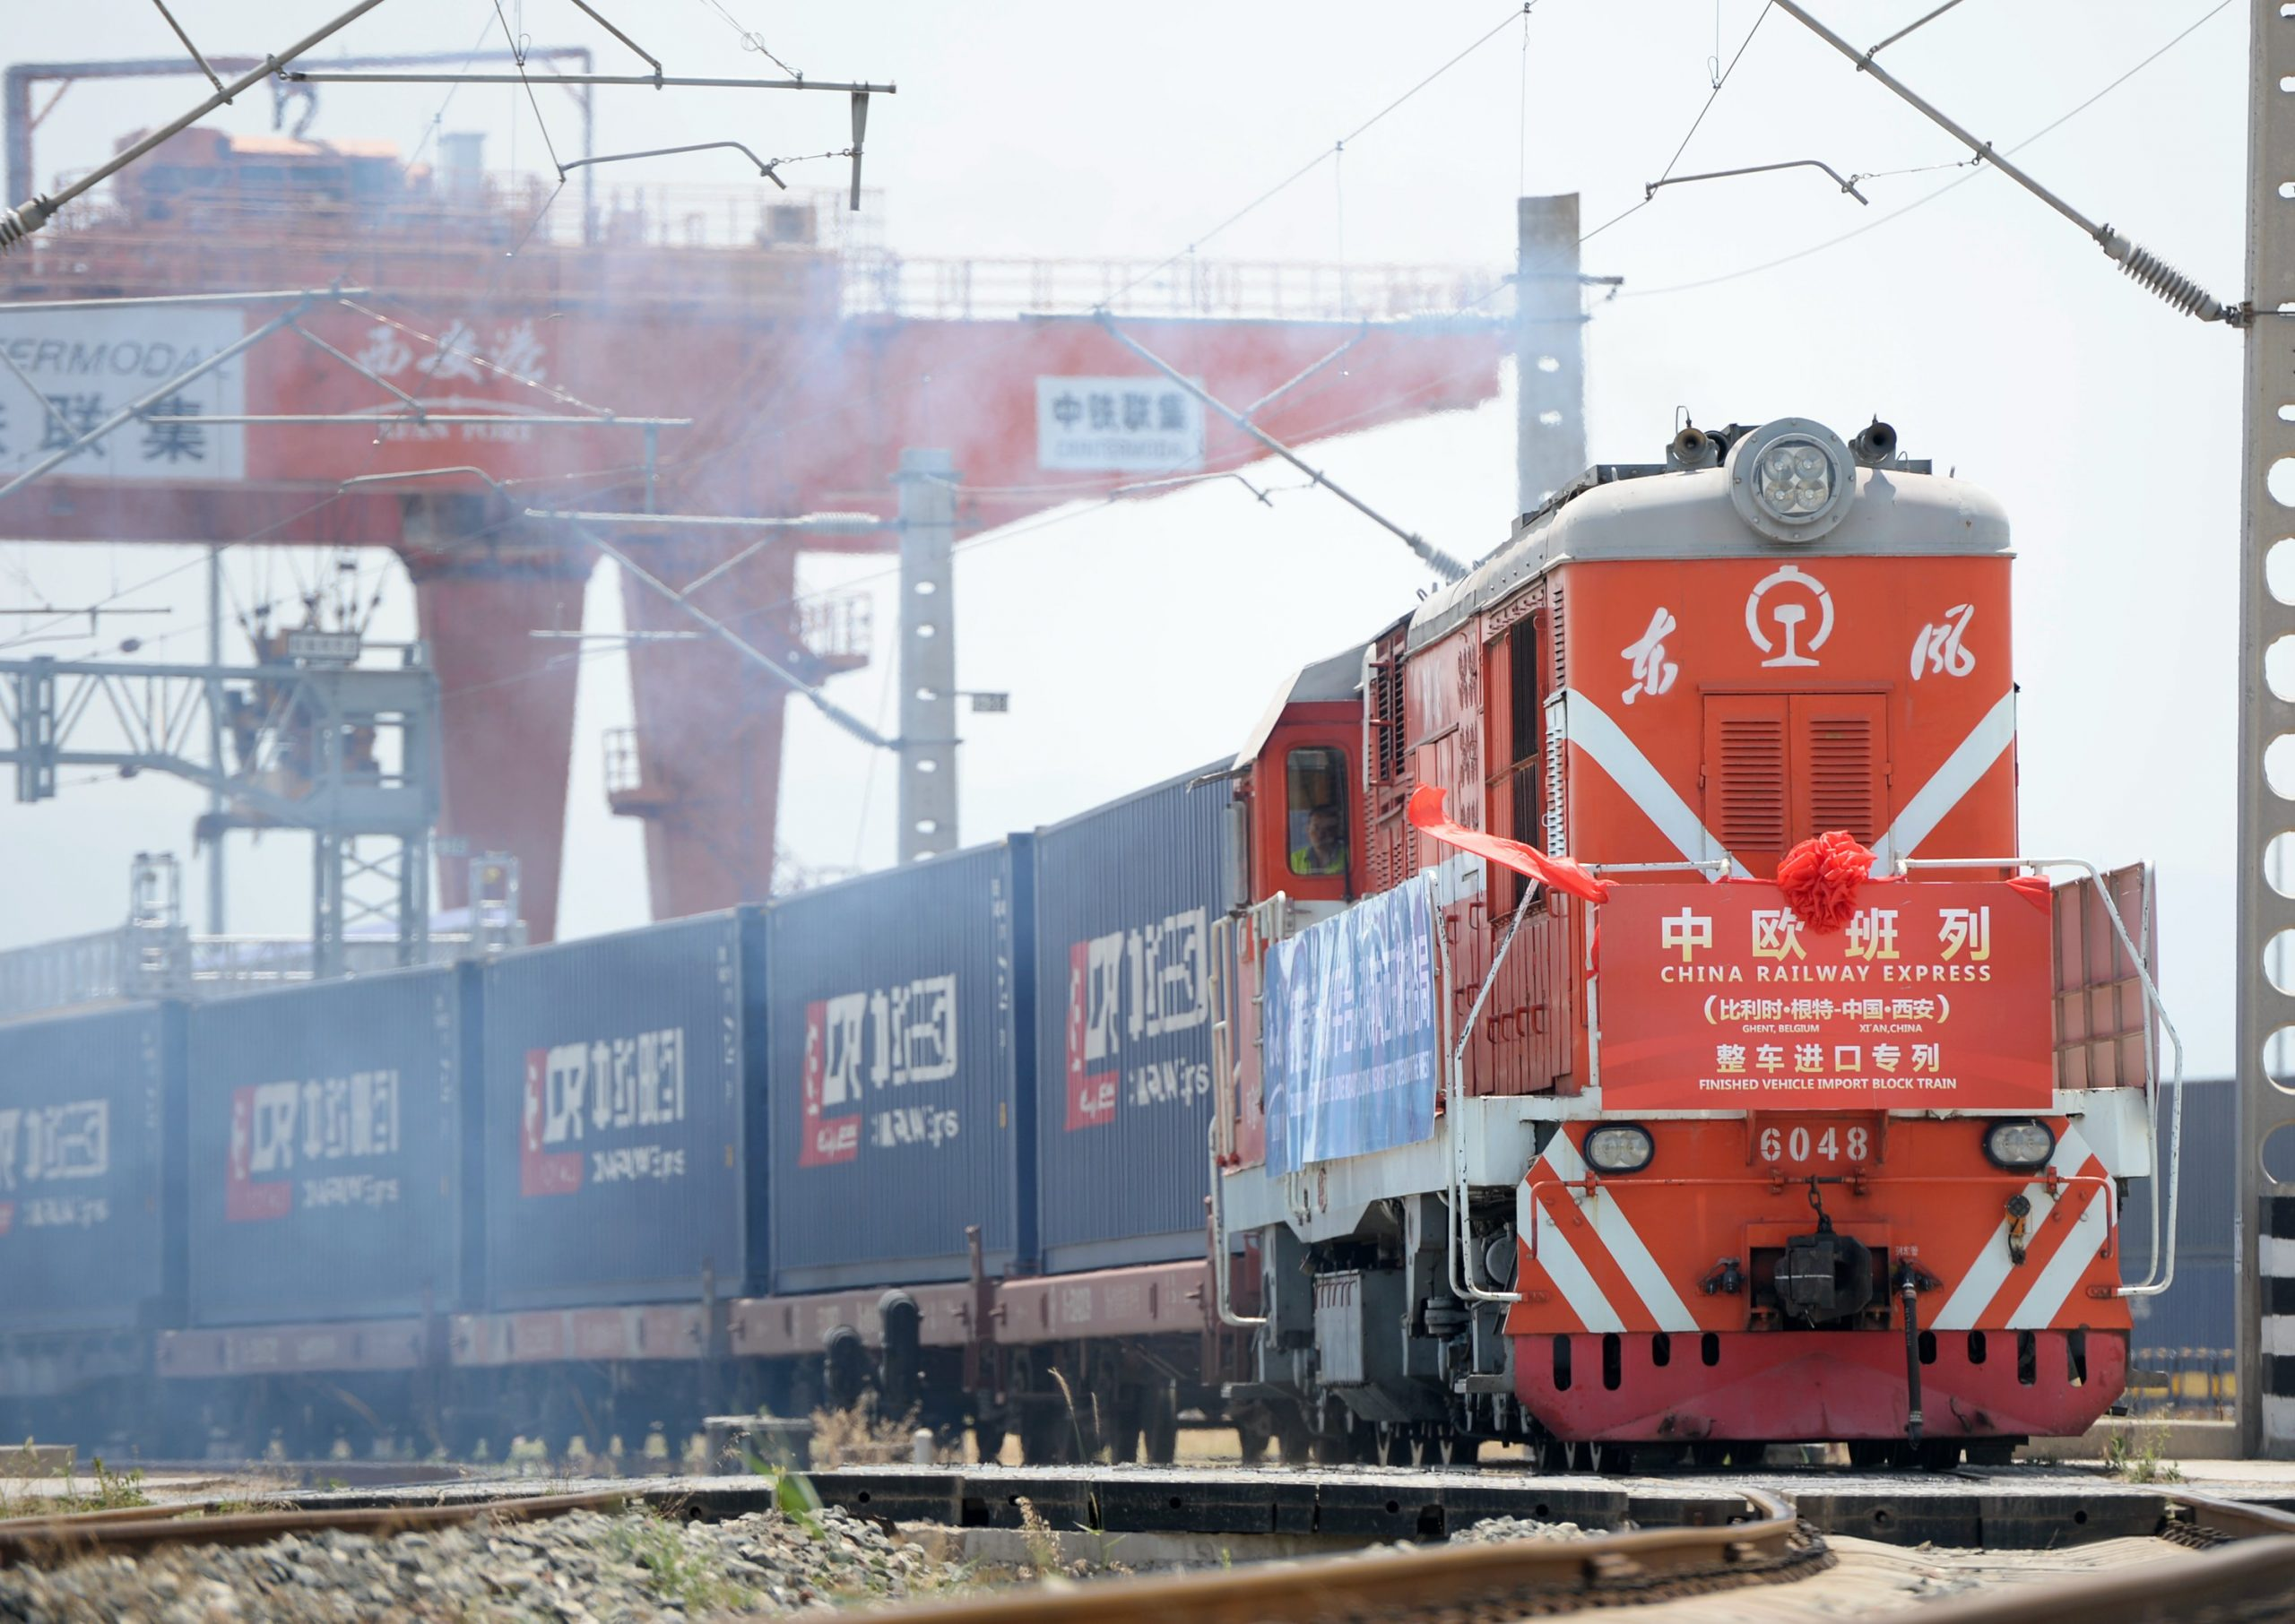 Record number of Xi'an to Europe rail freight services help meet COVID-19 demand